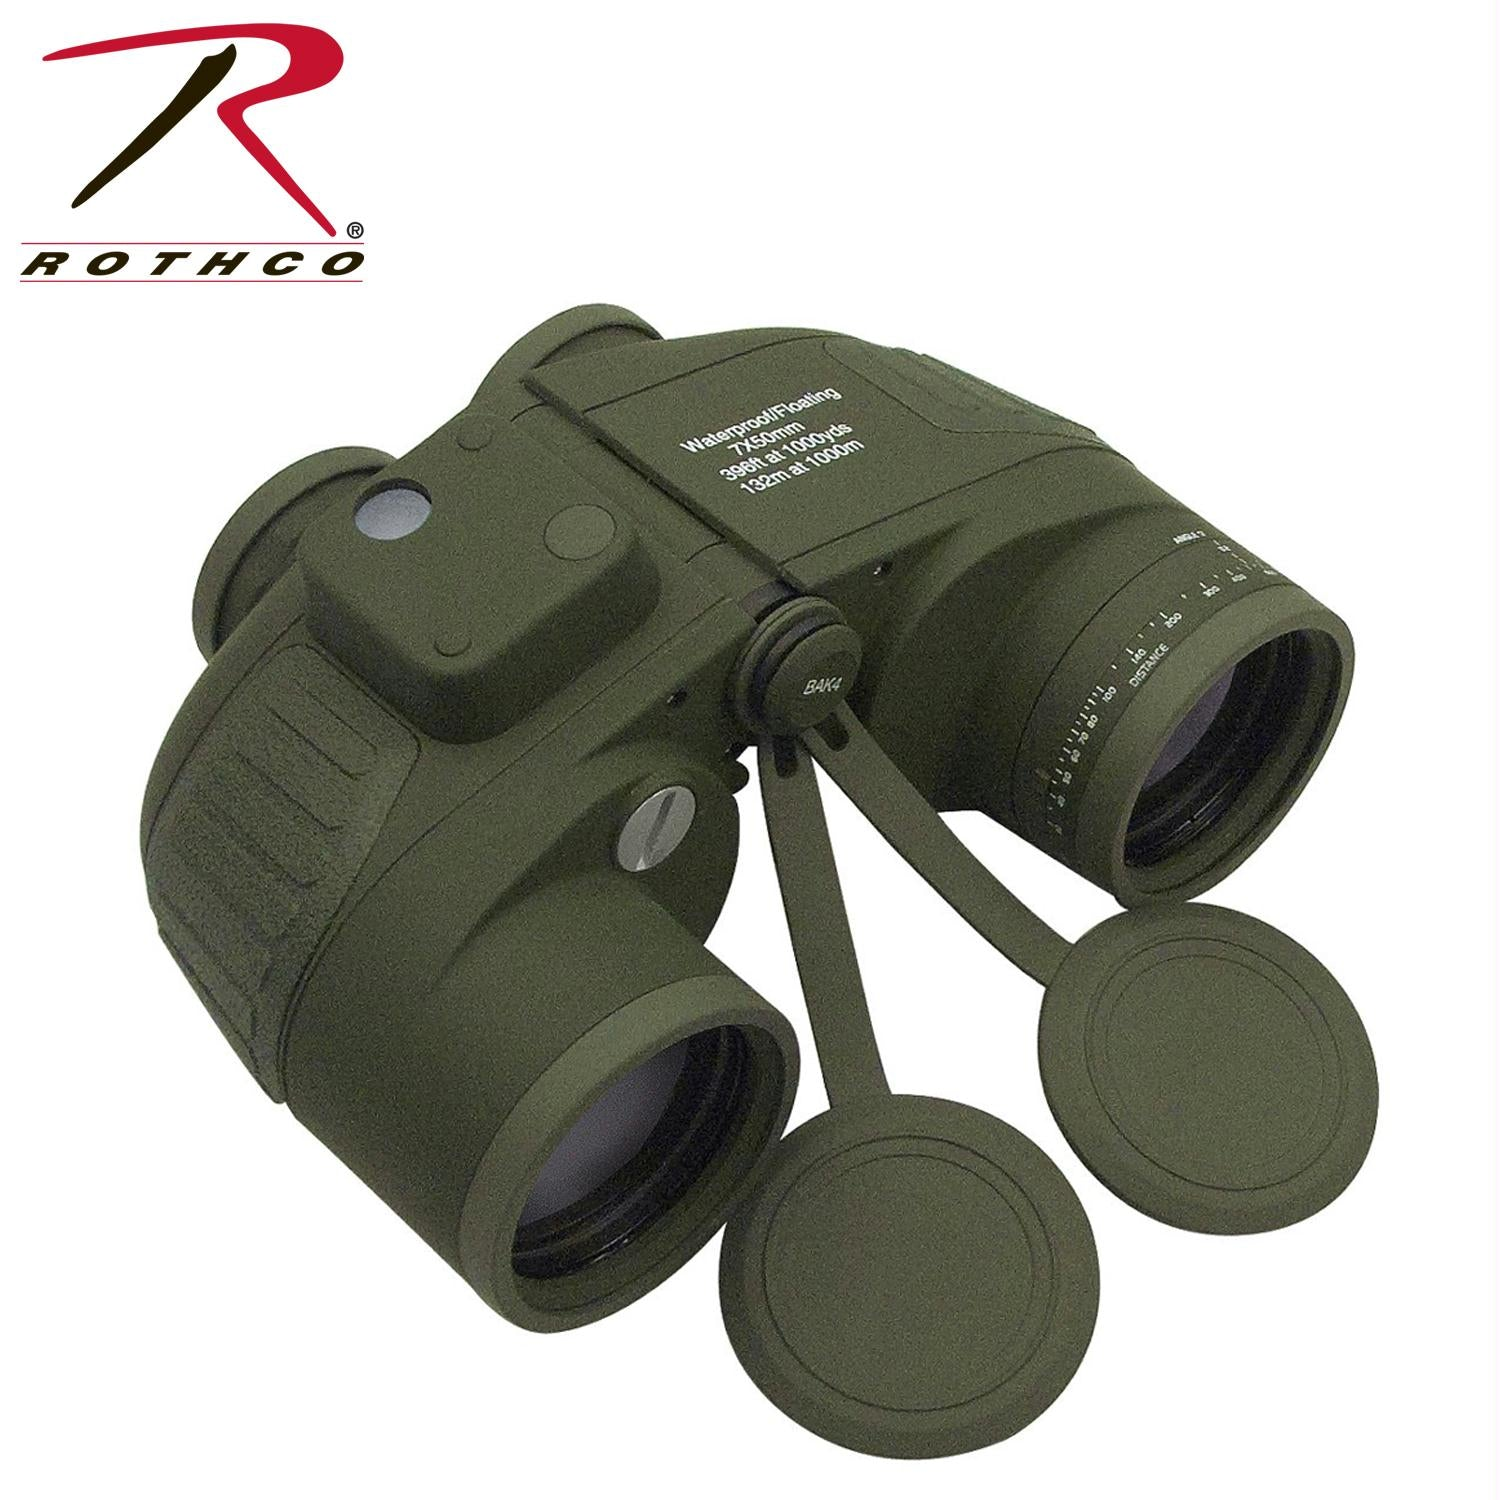 Rothco Military Type 7 x 50MM Binoculars - Olive Drab